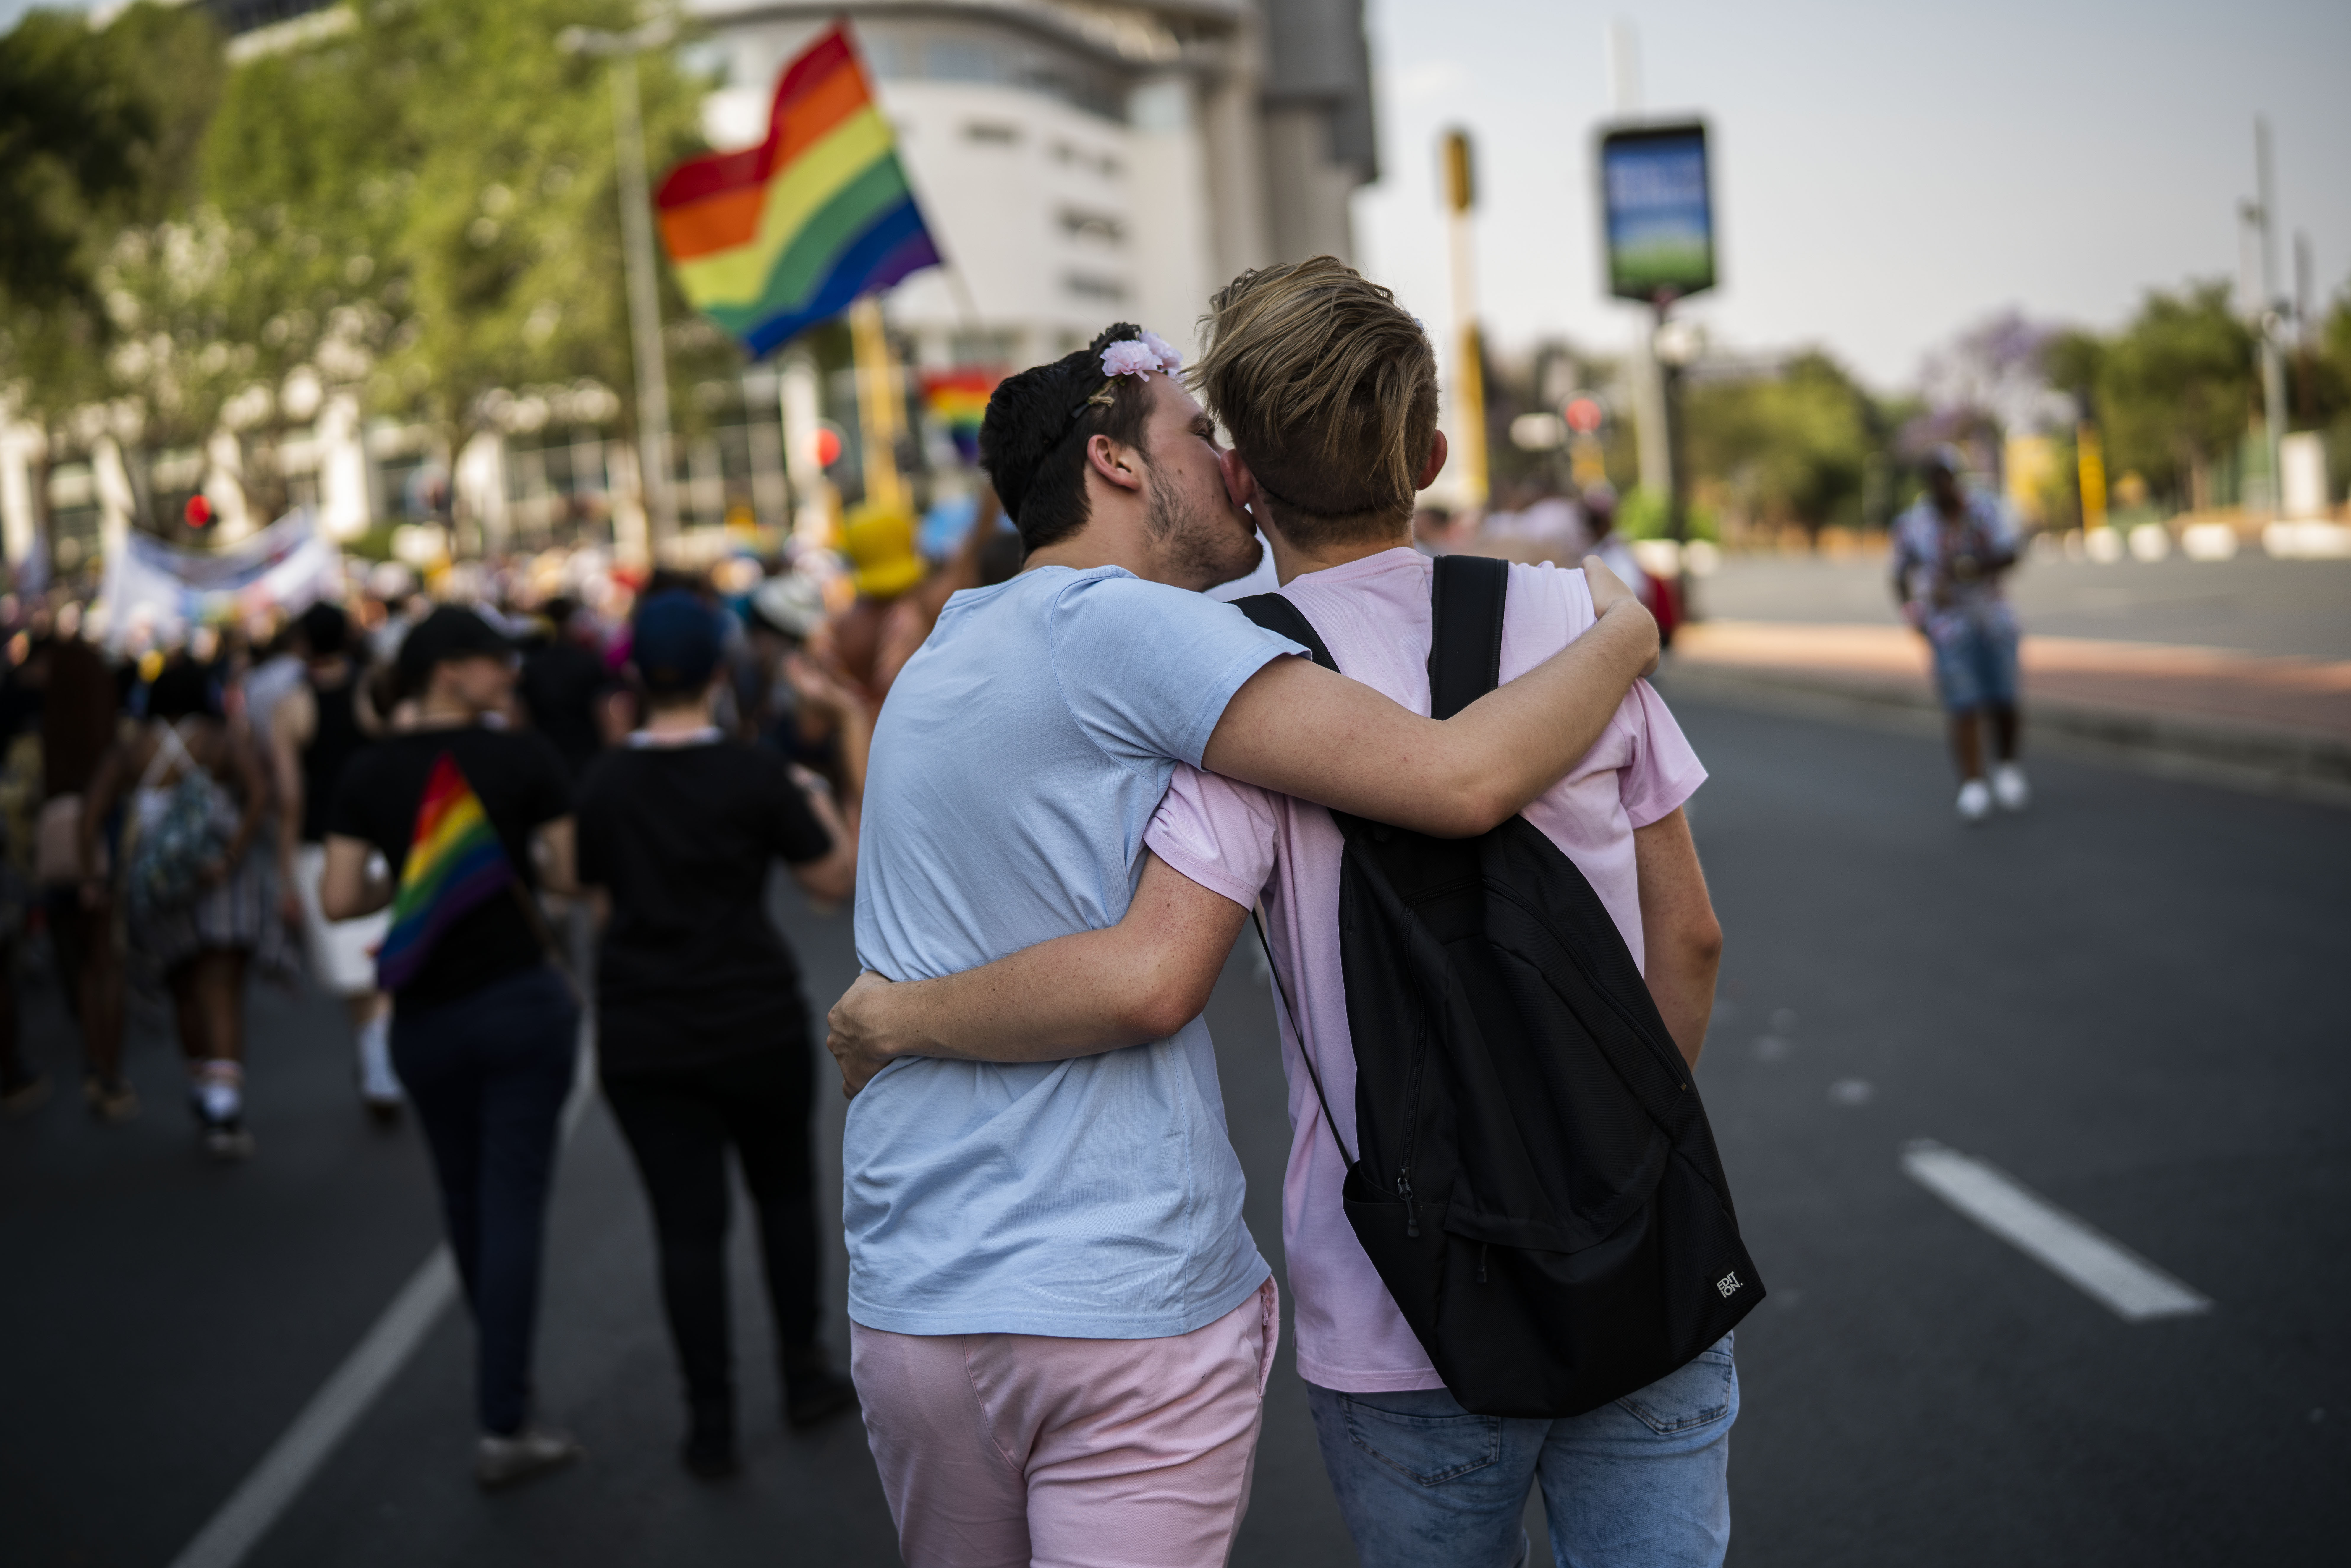 Couple hugging at pride